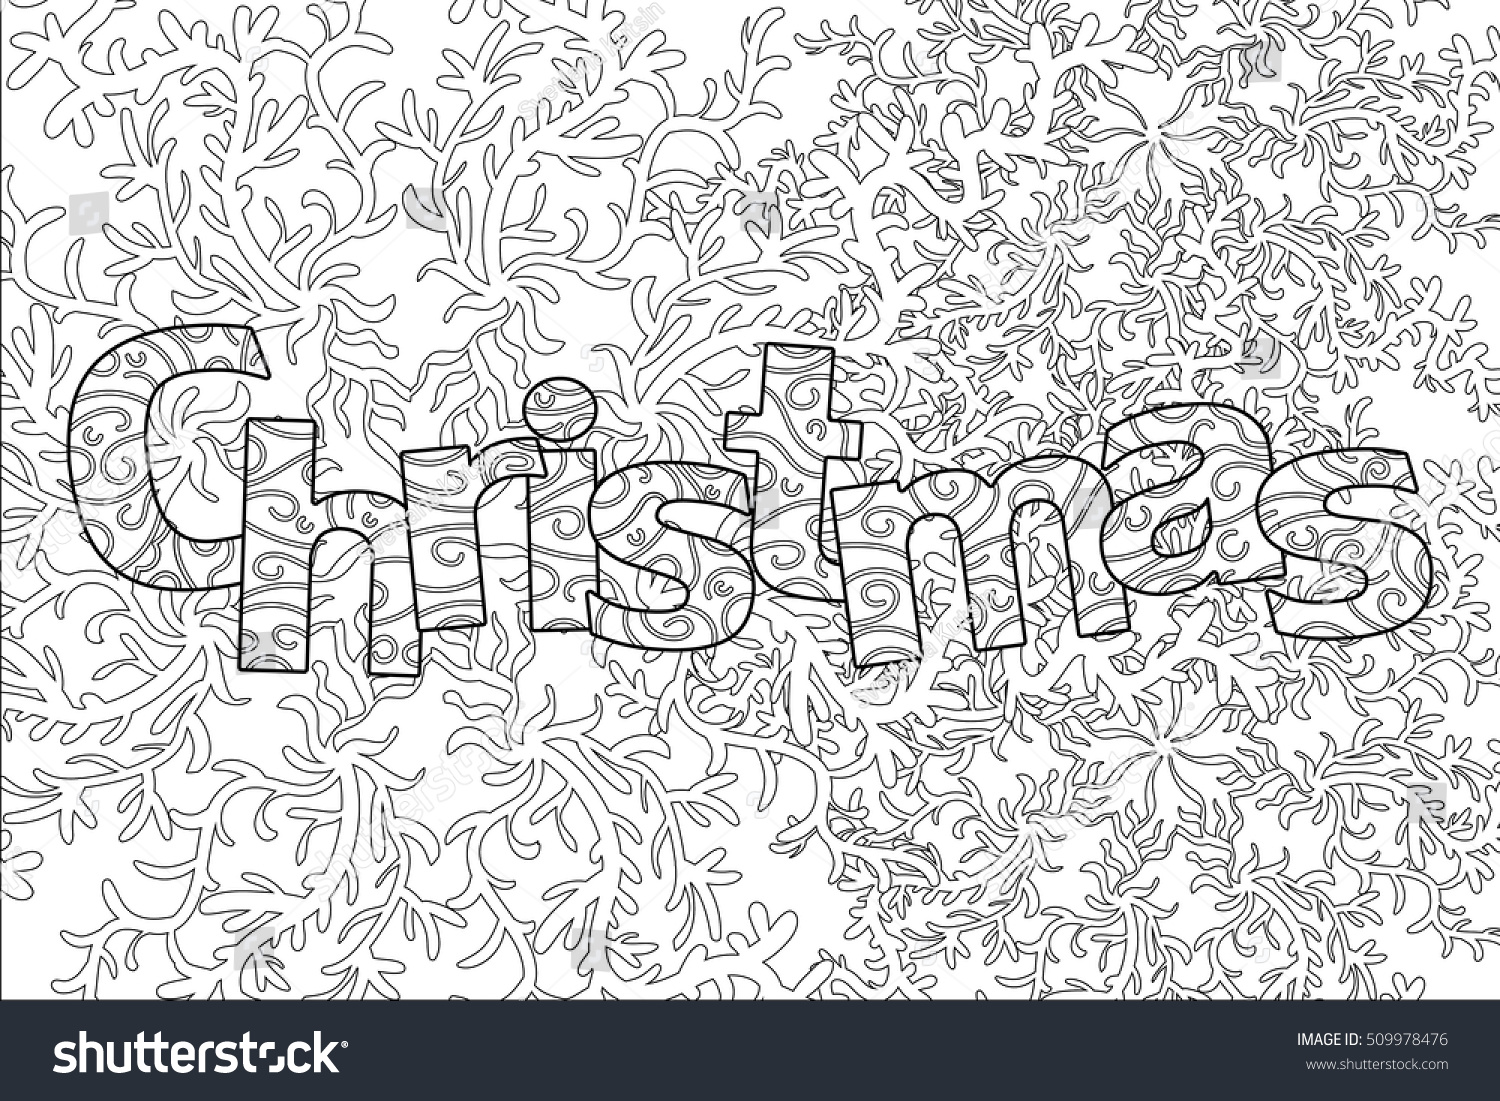 Christmas Pattern Adult Coloring Book Greeting Stock Vector (Royalty ...